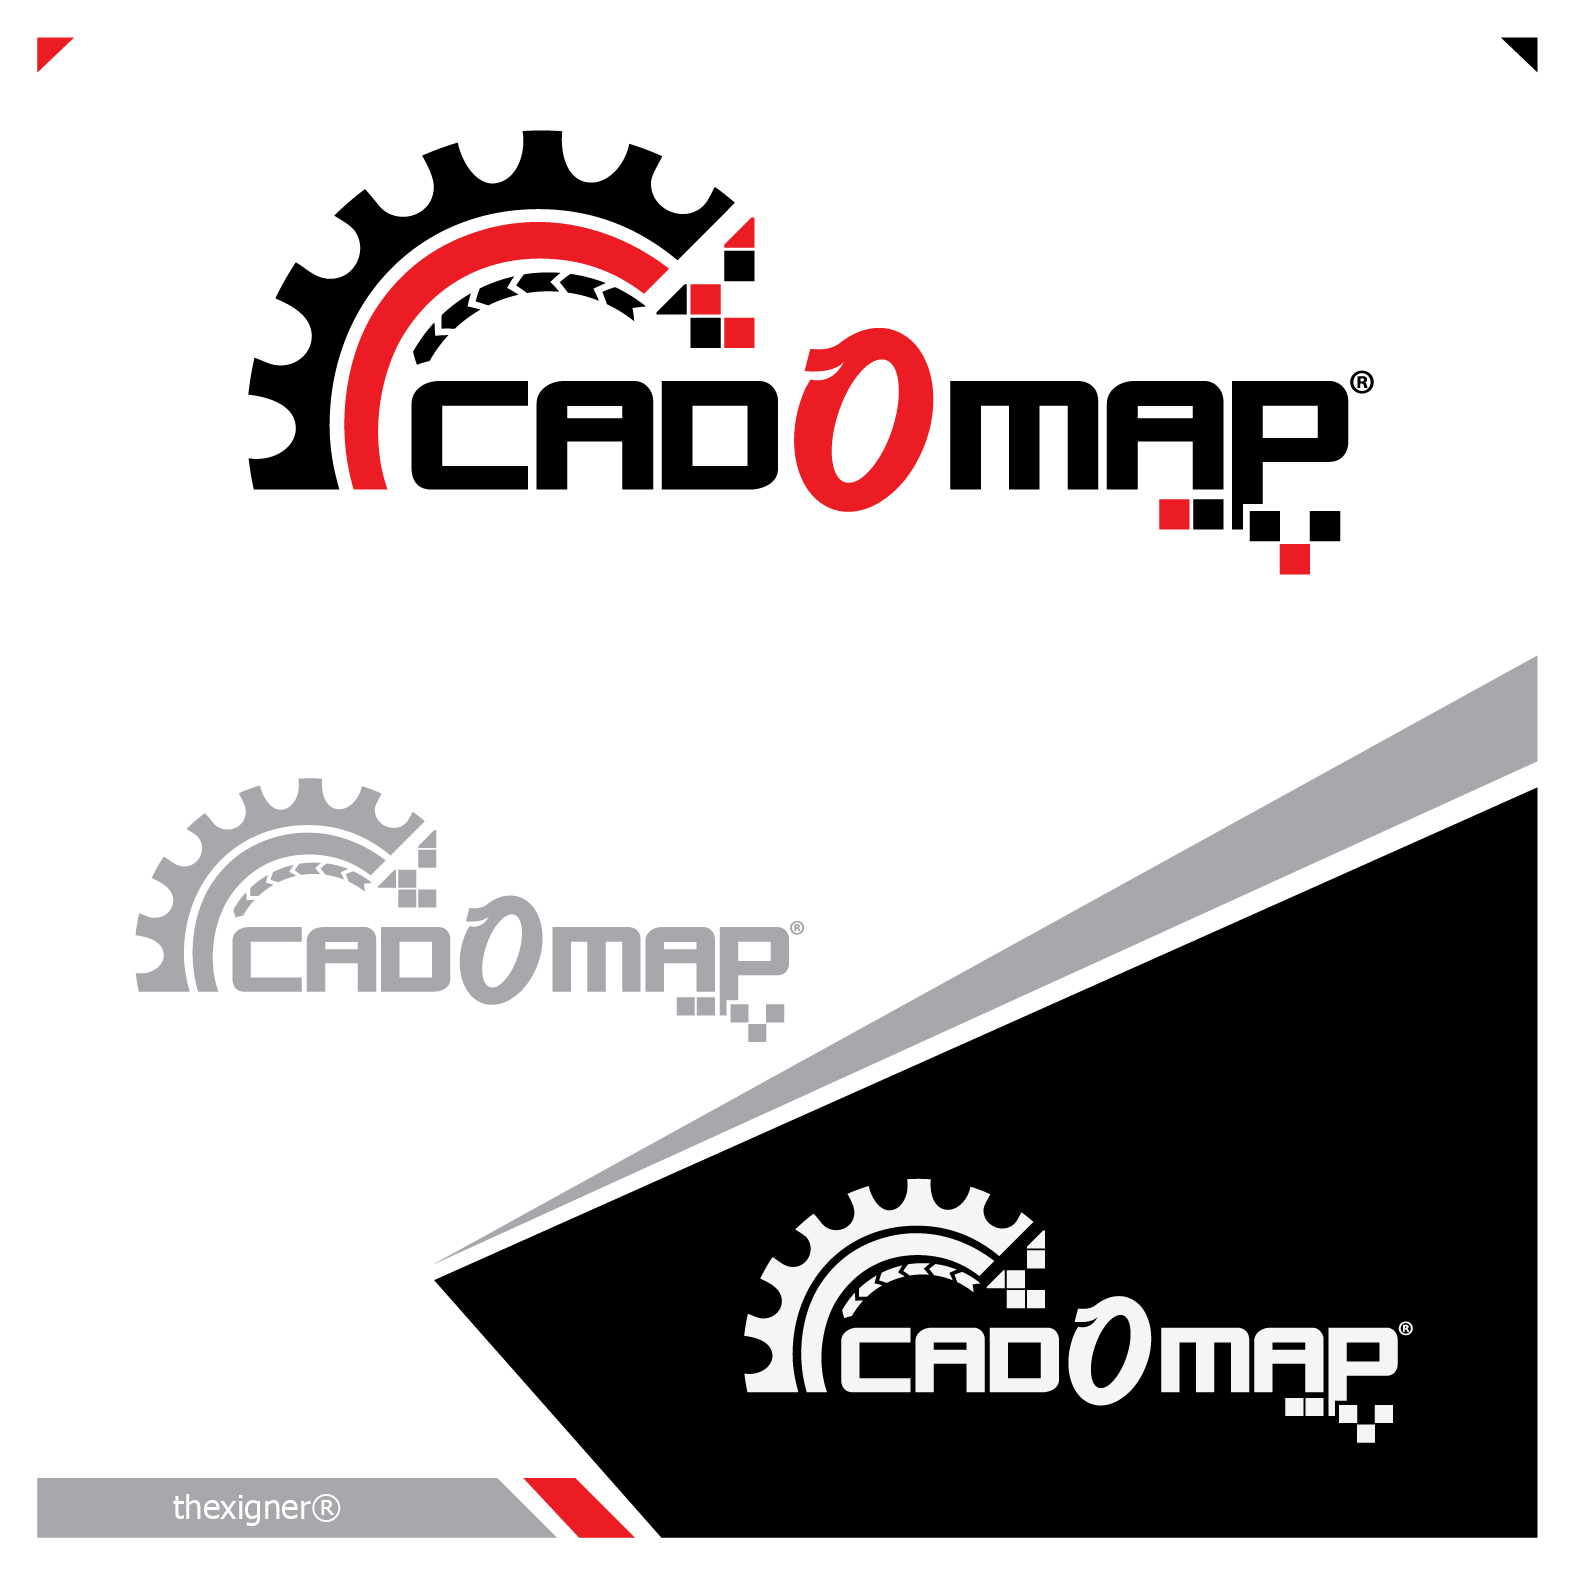 Logo Design by lagalag - Entry No. 159 in the Logo Design Contest Captivating Logo Design for CadOMap software product.